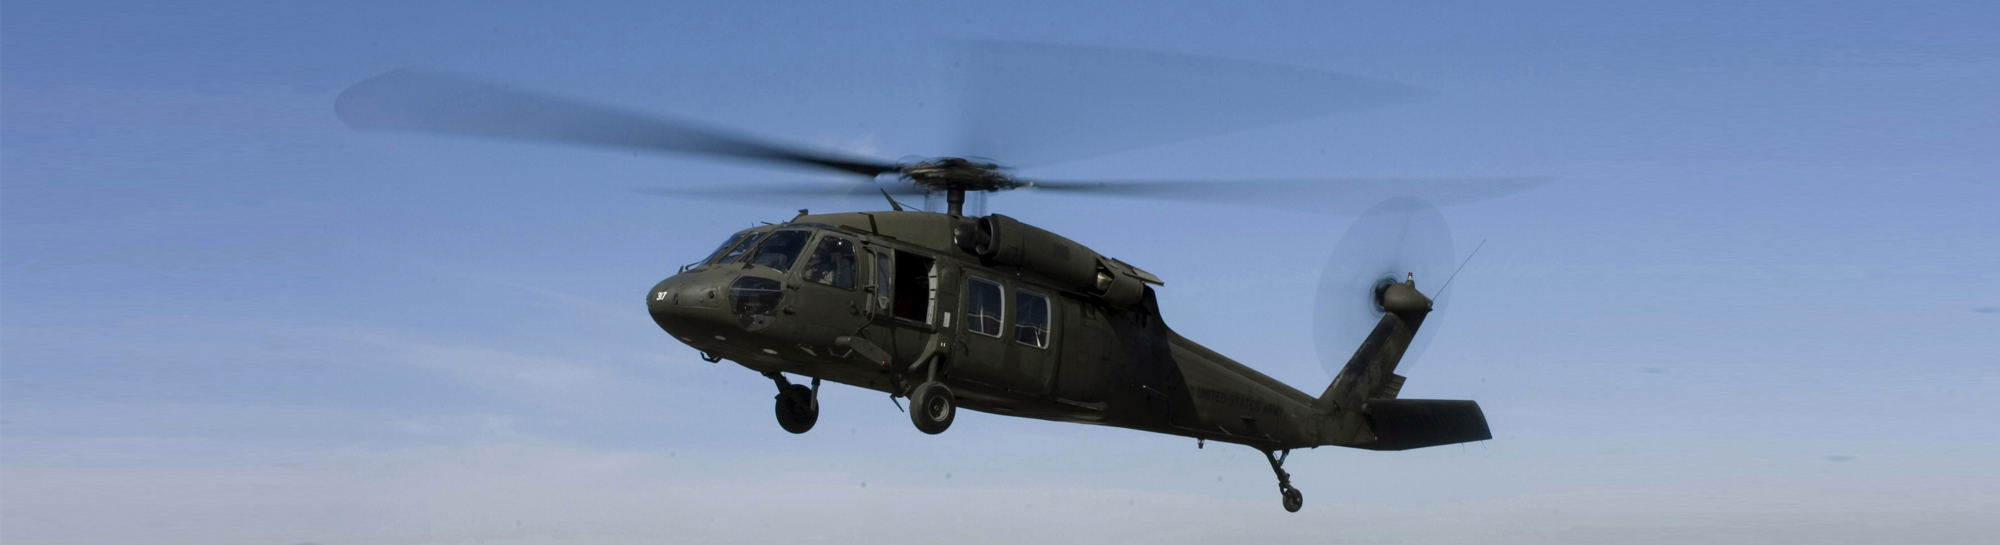 military aircraft and helicopter systems archives elbit systems